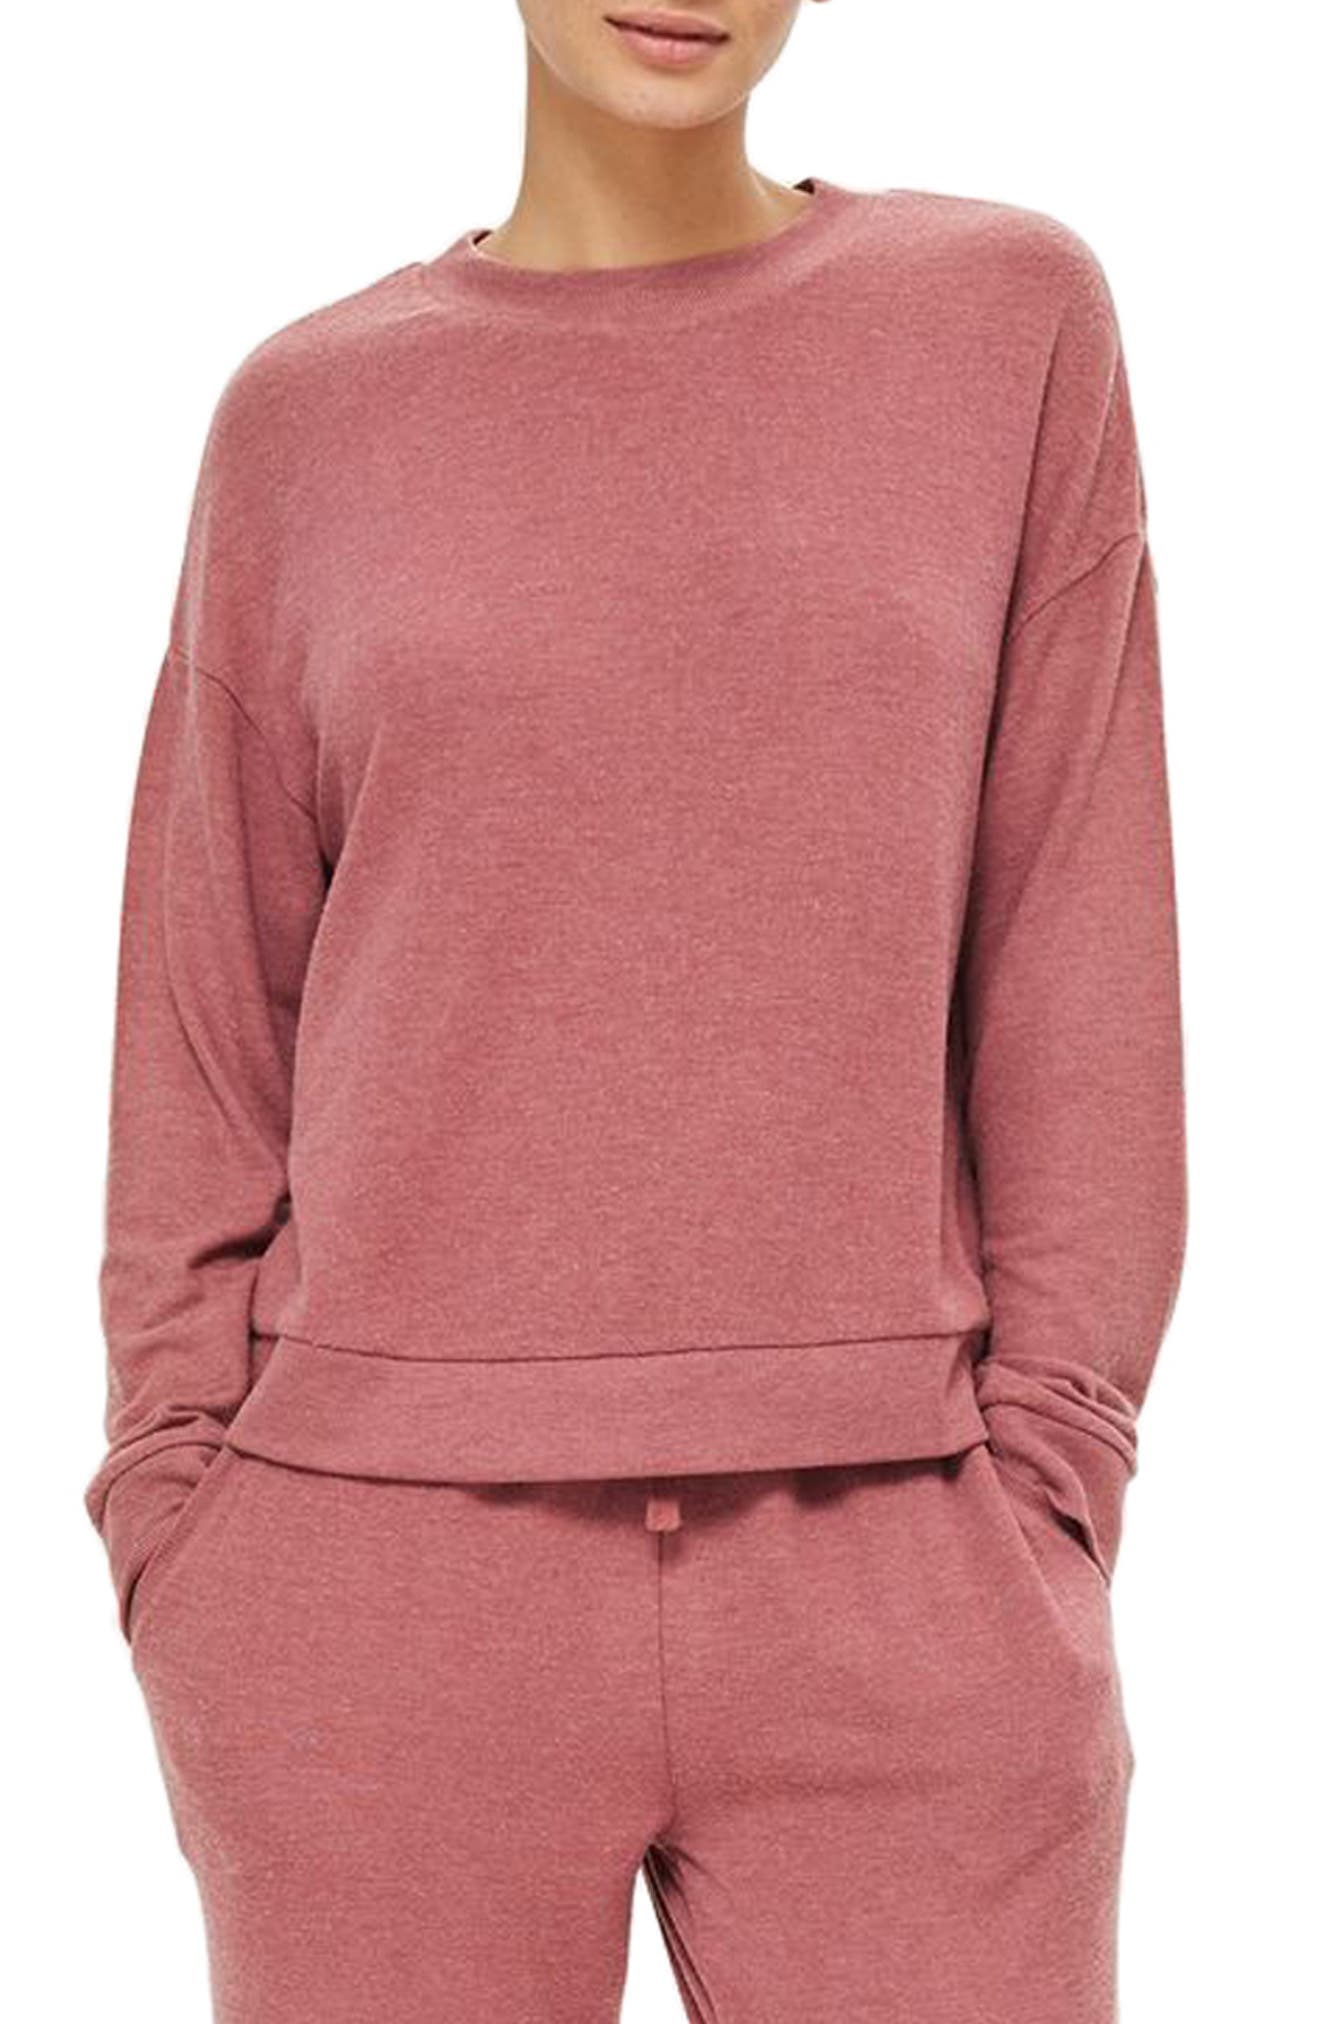 Rose Sweatshirt,                         Main,                         color, Pink